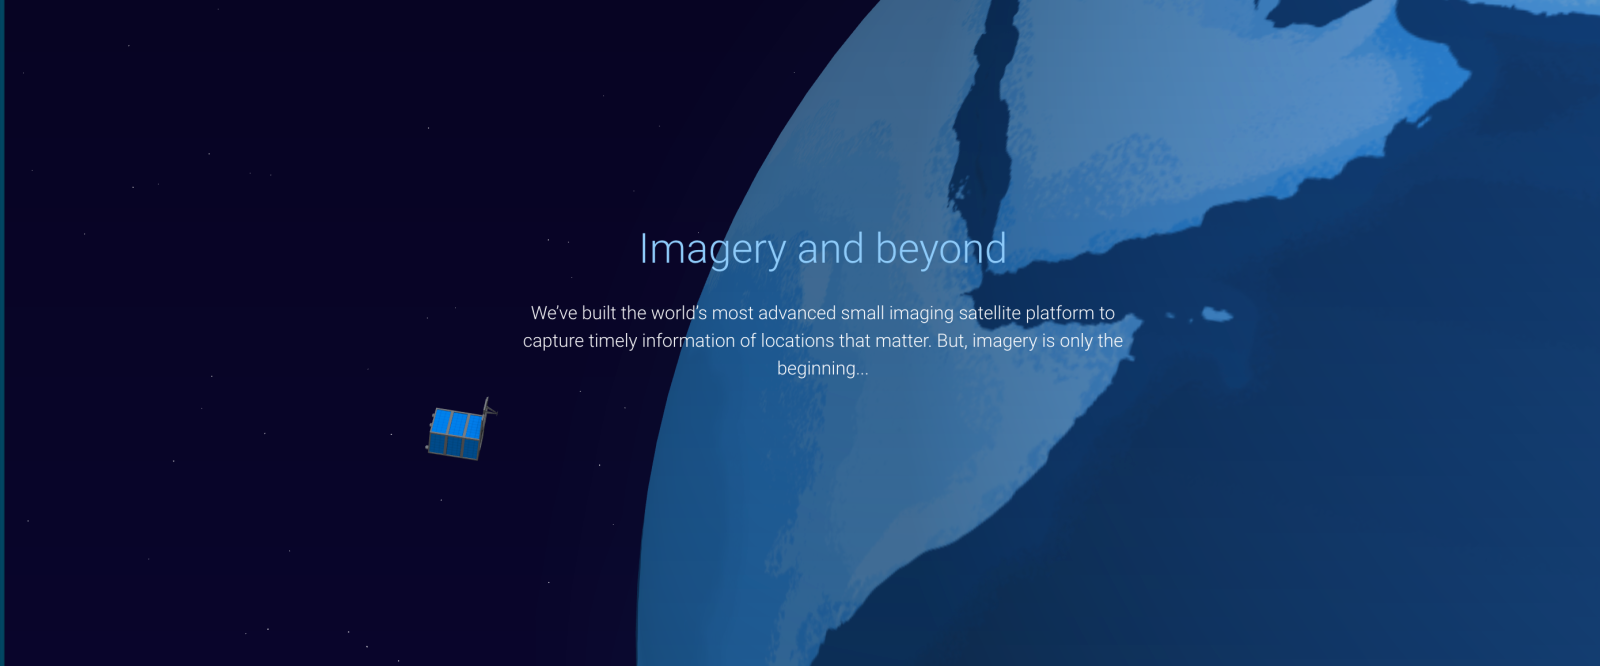 Google is selling its Terra Bella satellite to Planet Labs